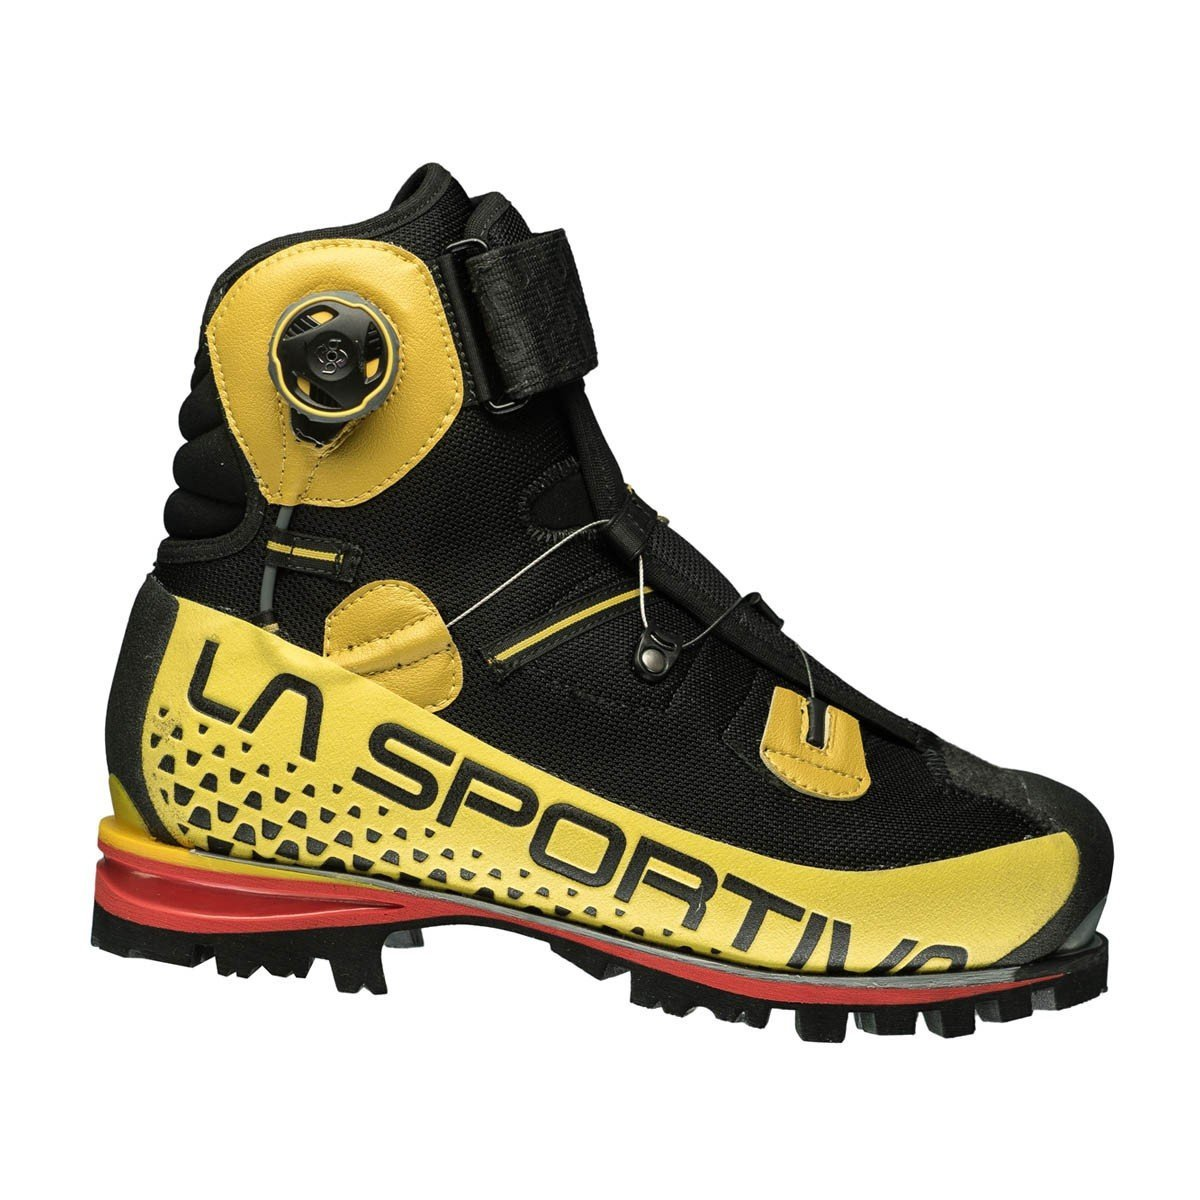 La Sportiva G5 Mountaineering Boot, side view